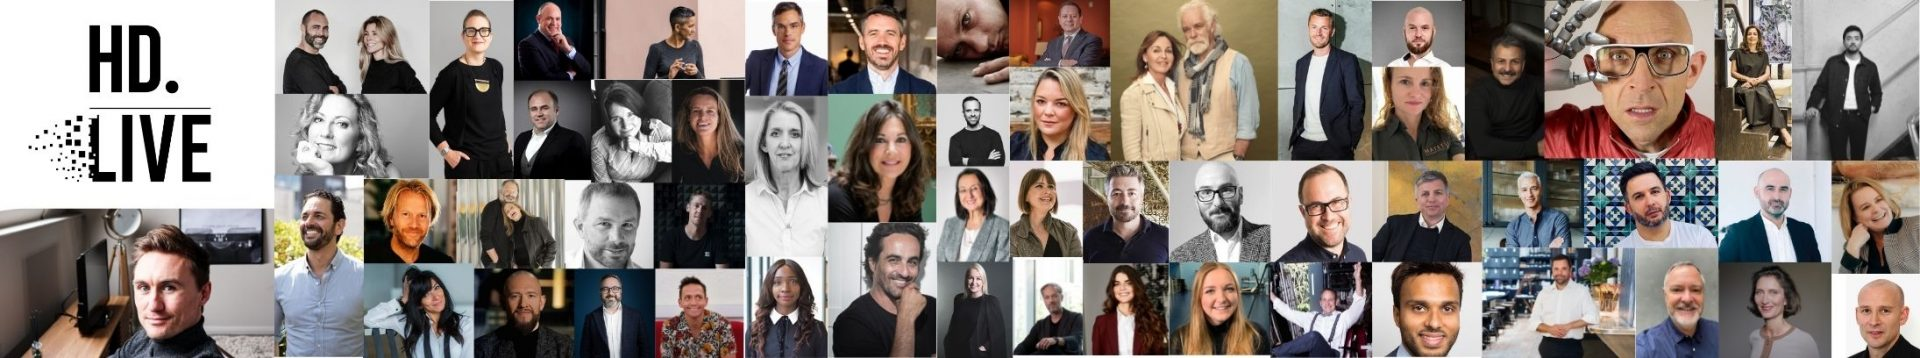 A collage of the designers, architects and hospitality experts, from all corners of the globe, who participated as Hotel Designs LIVE speakers.